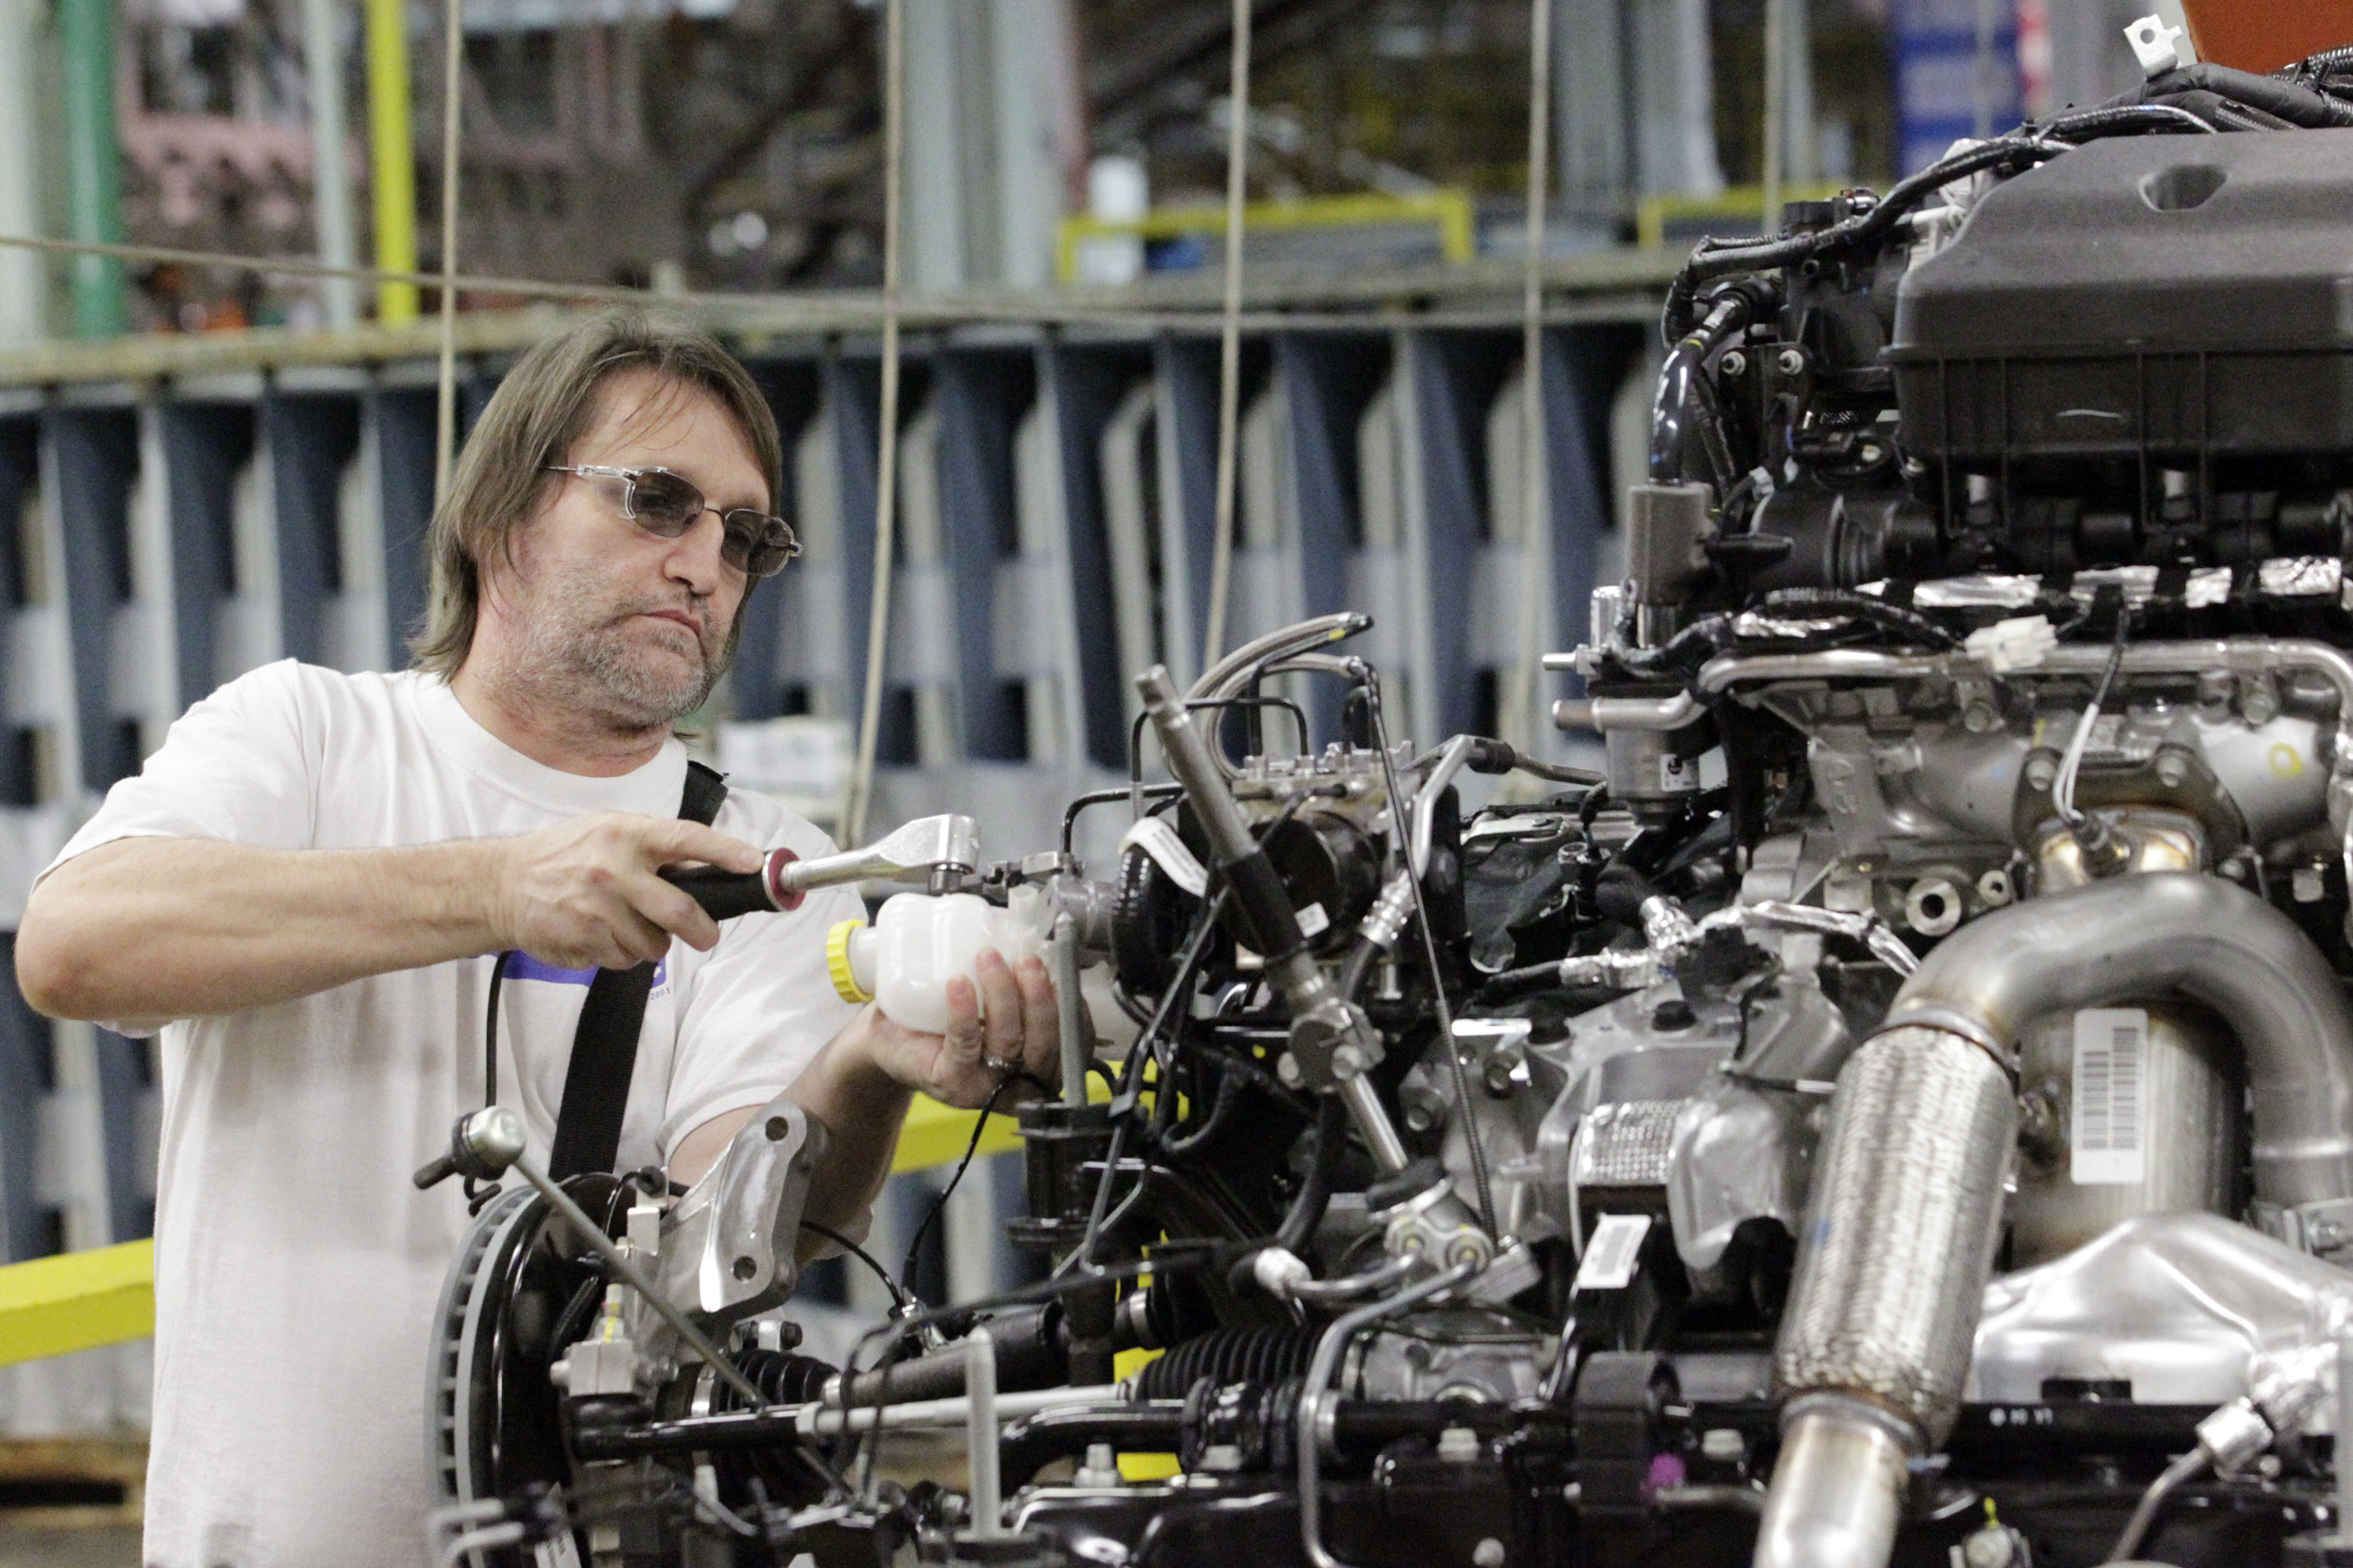 Chrysler Group Celebrates Production Of New 2011 Minivan At Windsor Assembly Plant